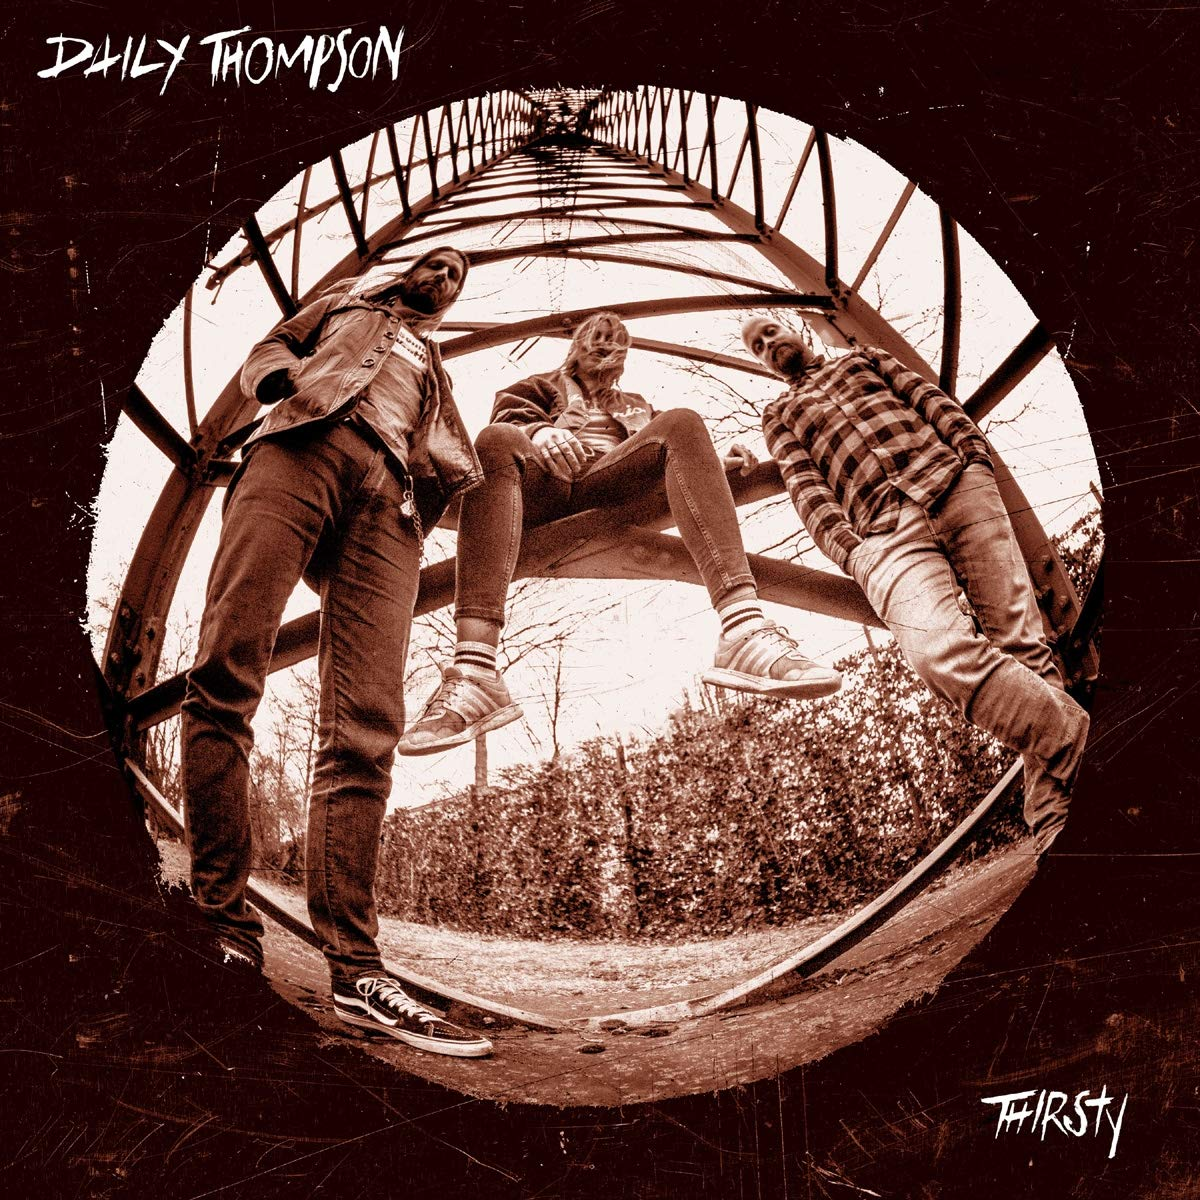 Daily Thompson - Thirsty